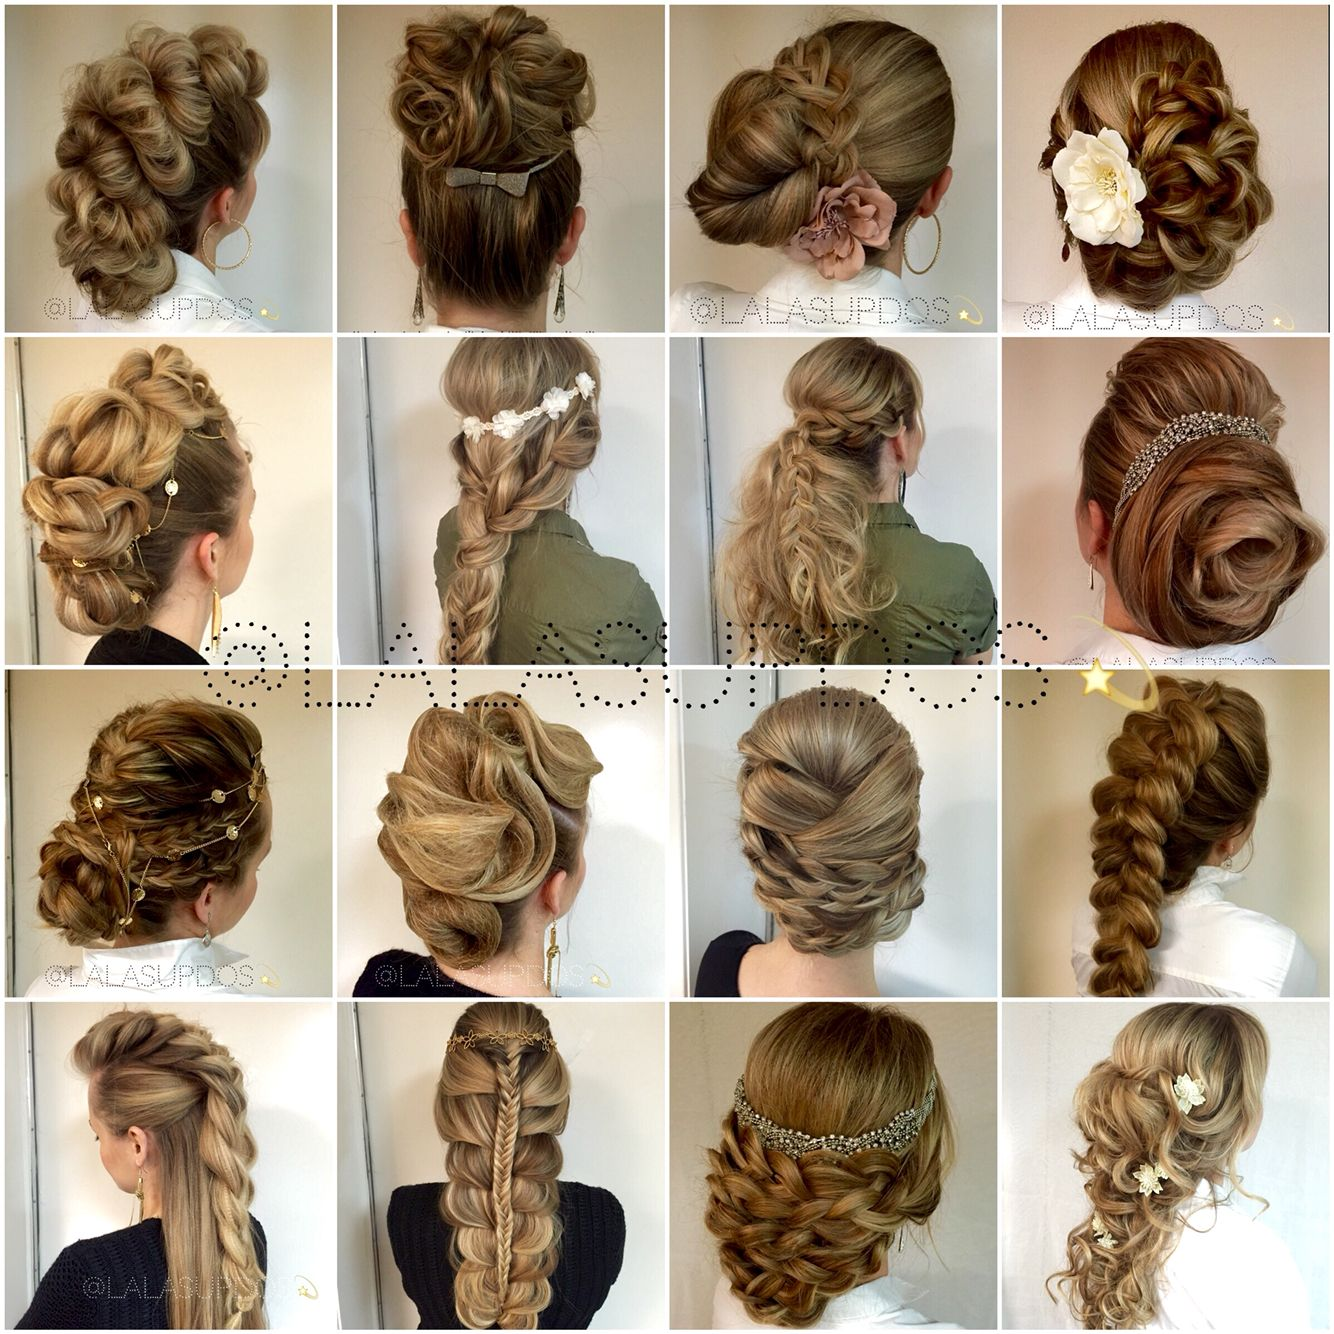 Pin By Kj Ehrhart On Updos Braids By Lalasupdos Hair Styles Pinterest Hair Hair Beauty